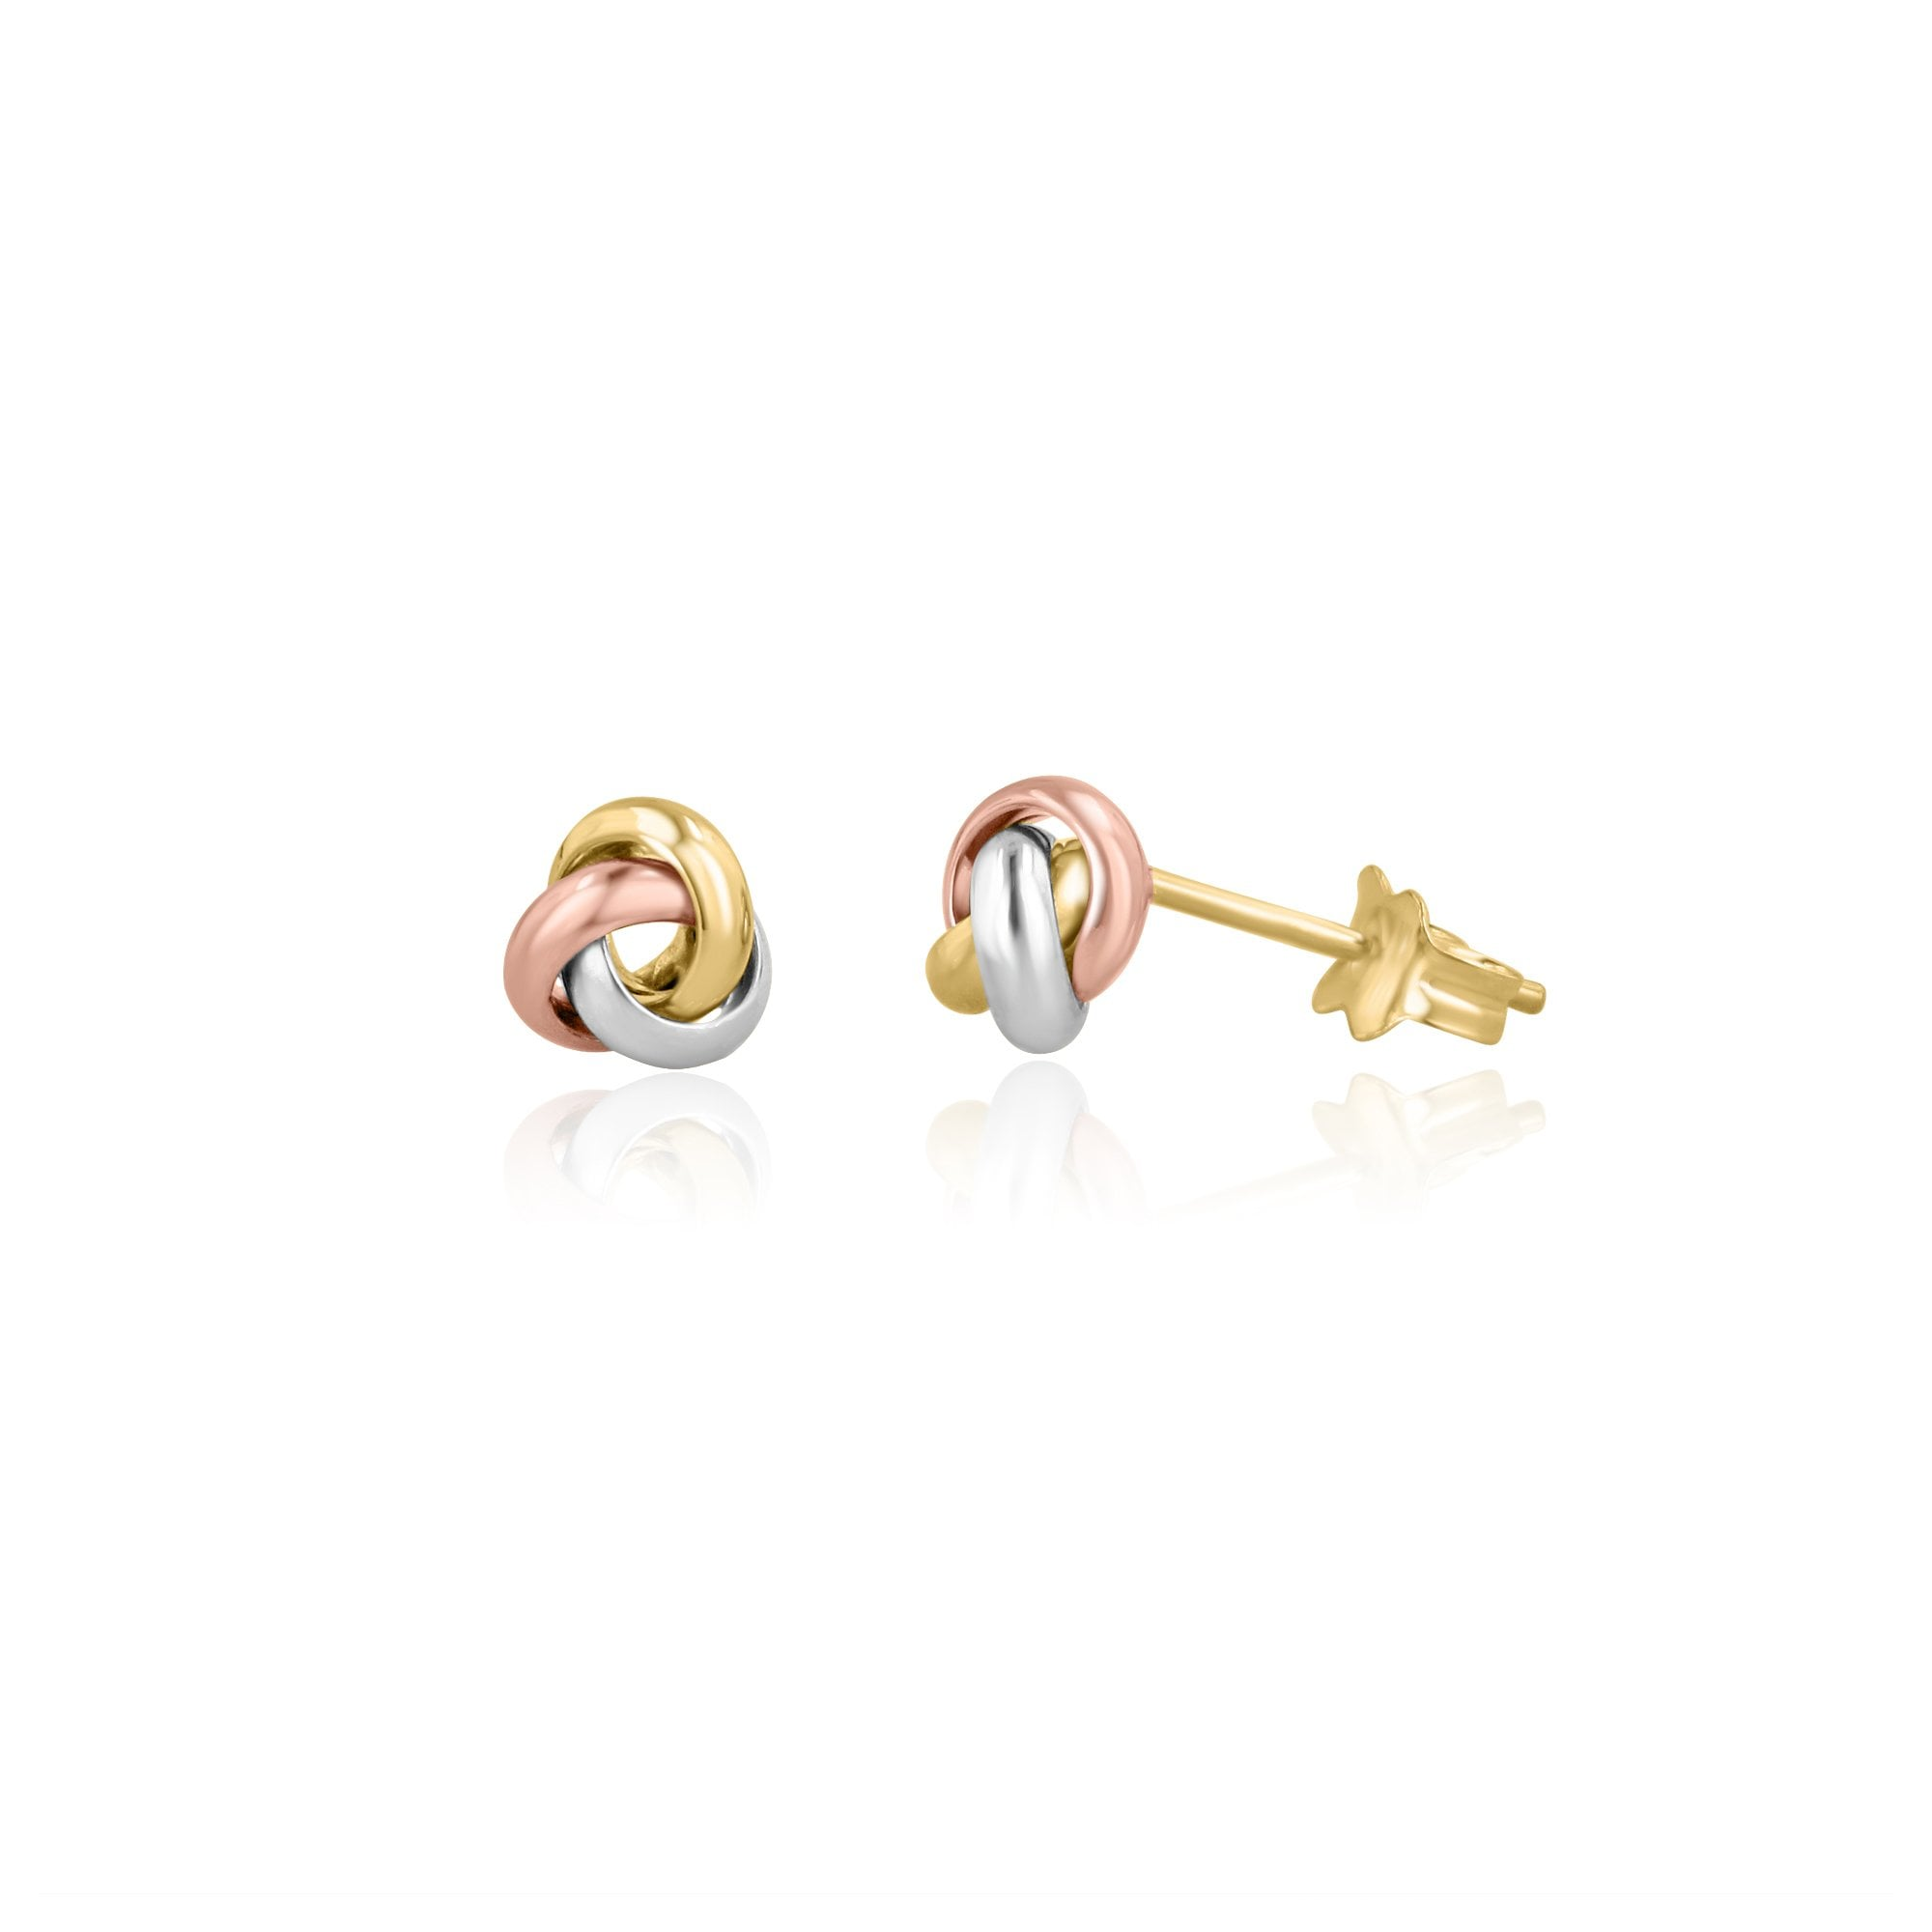 dc5254e03 Small Three Colour Gold Knot Stud Earrings - Womens from Avanti of  Ashbourne Ltd UK